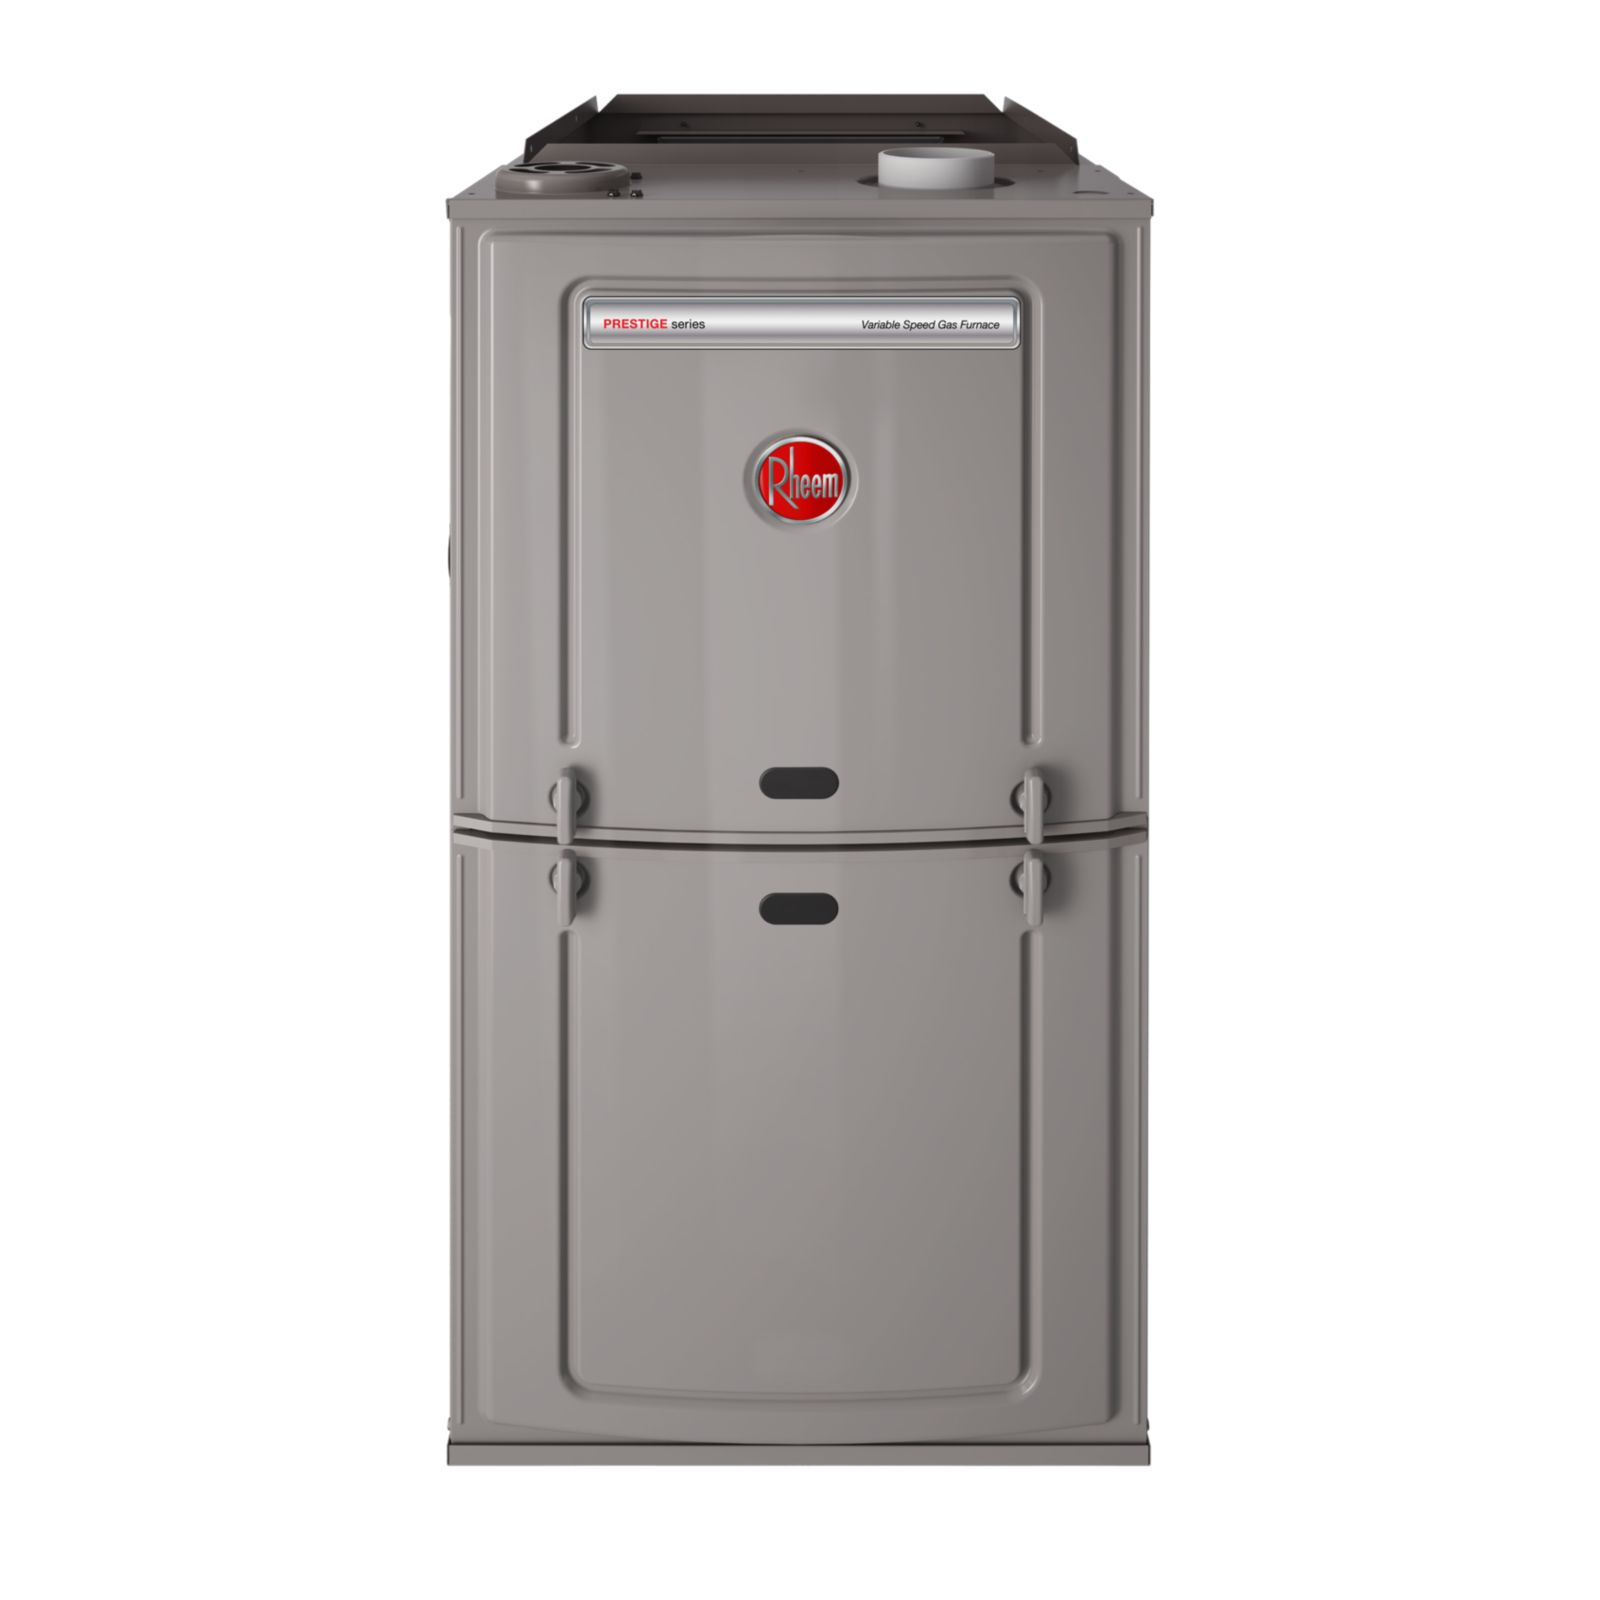 Rheem R802VA075317MSA - Prestige 80% Gas Furnace Two Stage Variable Speed, 75K BTU, Upflow/Horizontal, ECM Motor, Up to 3 Ton